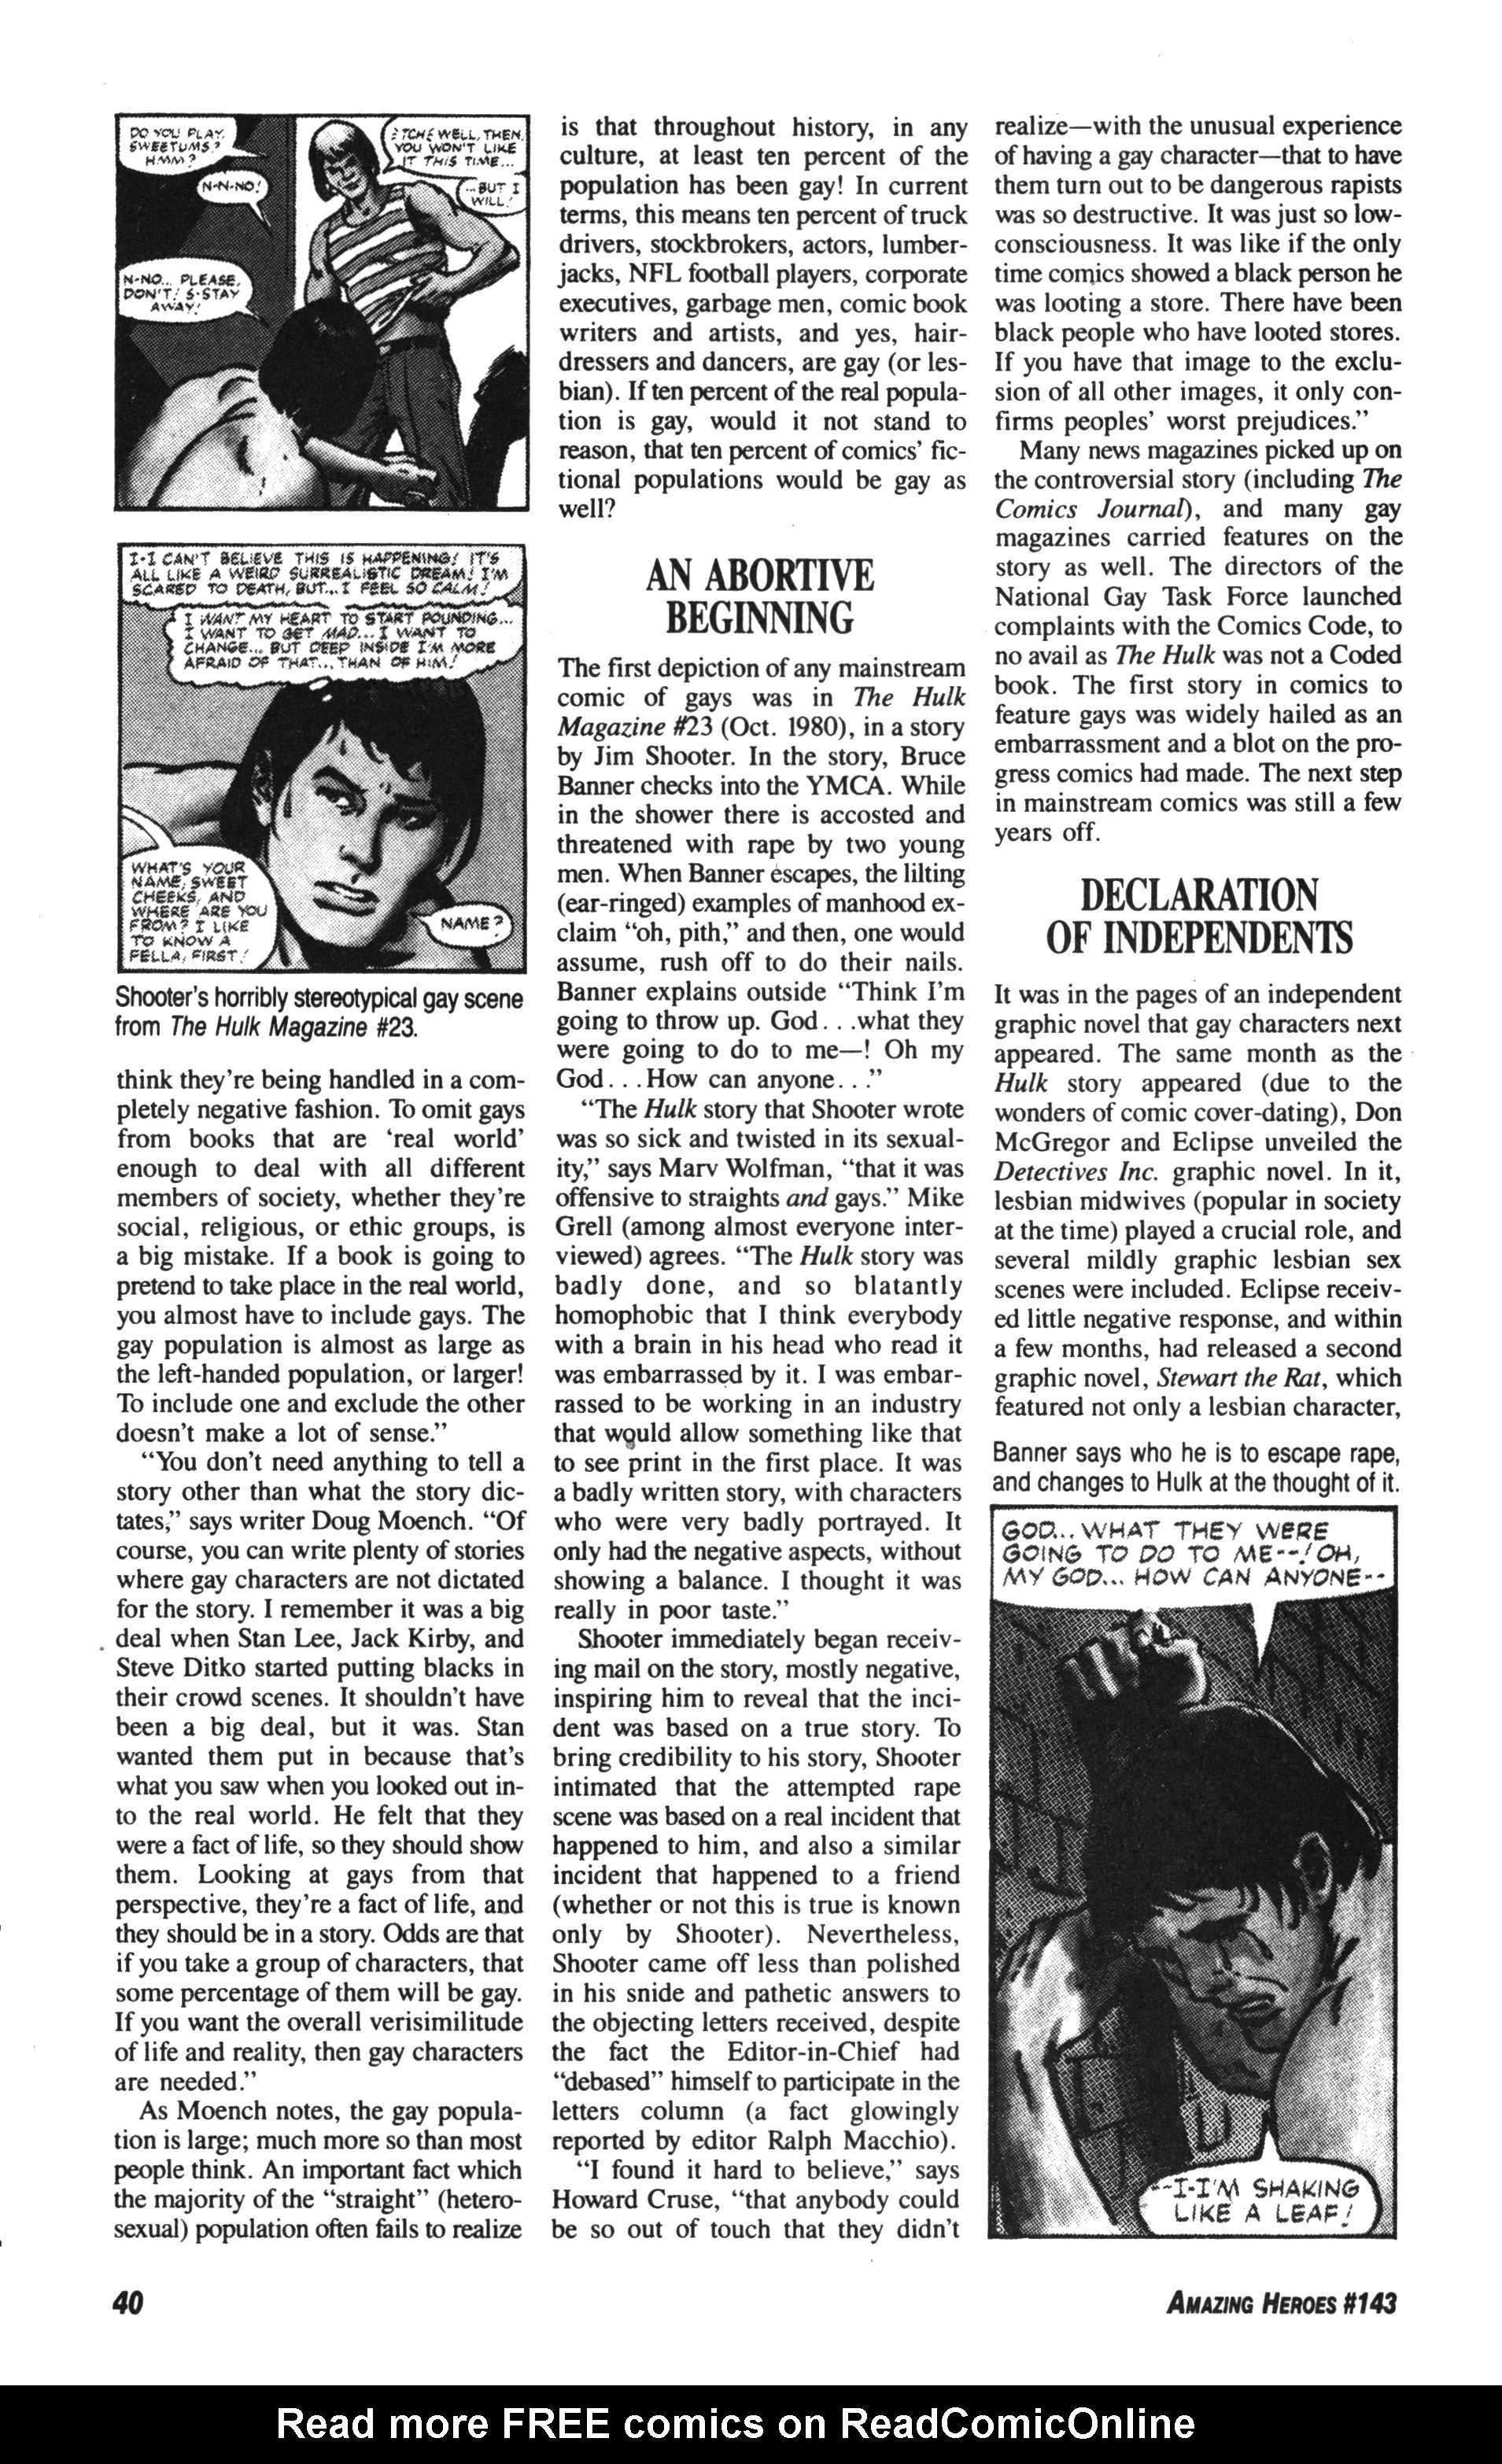 Read online Amazing Heroes comic -  Issue #143 - 40